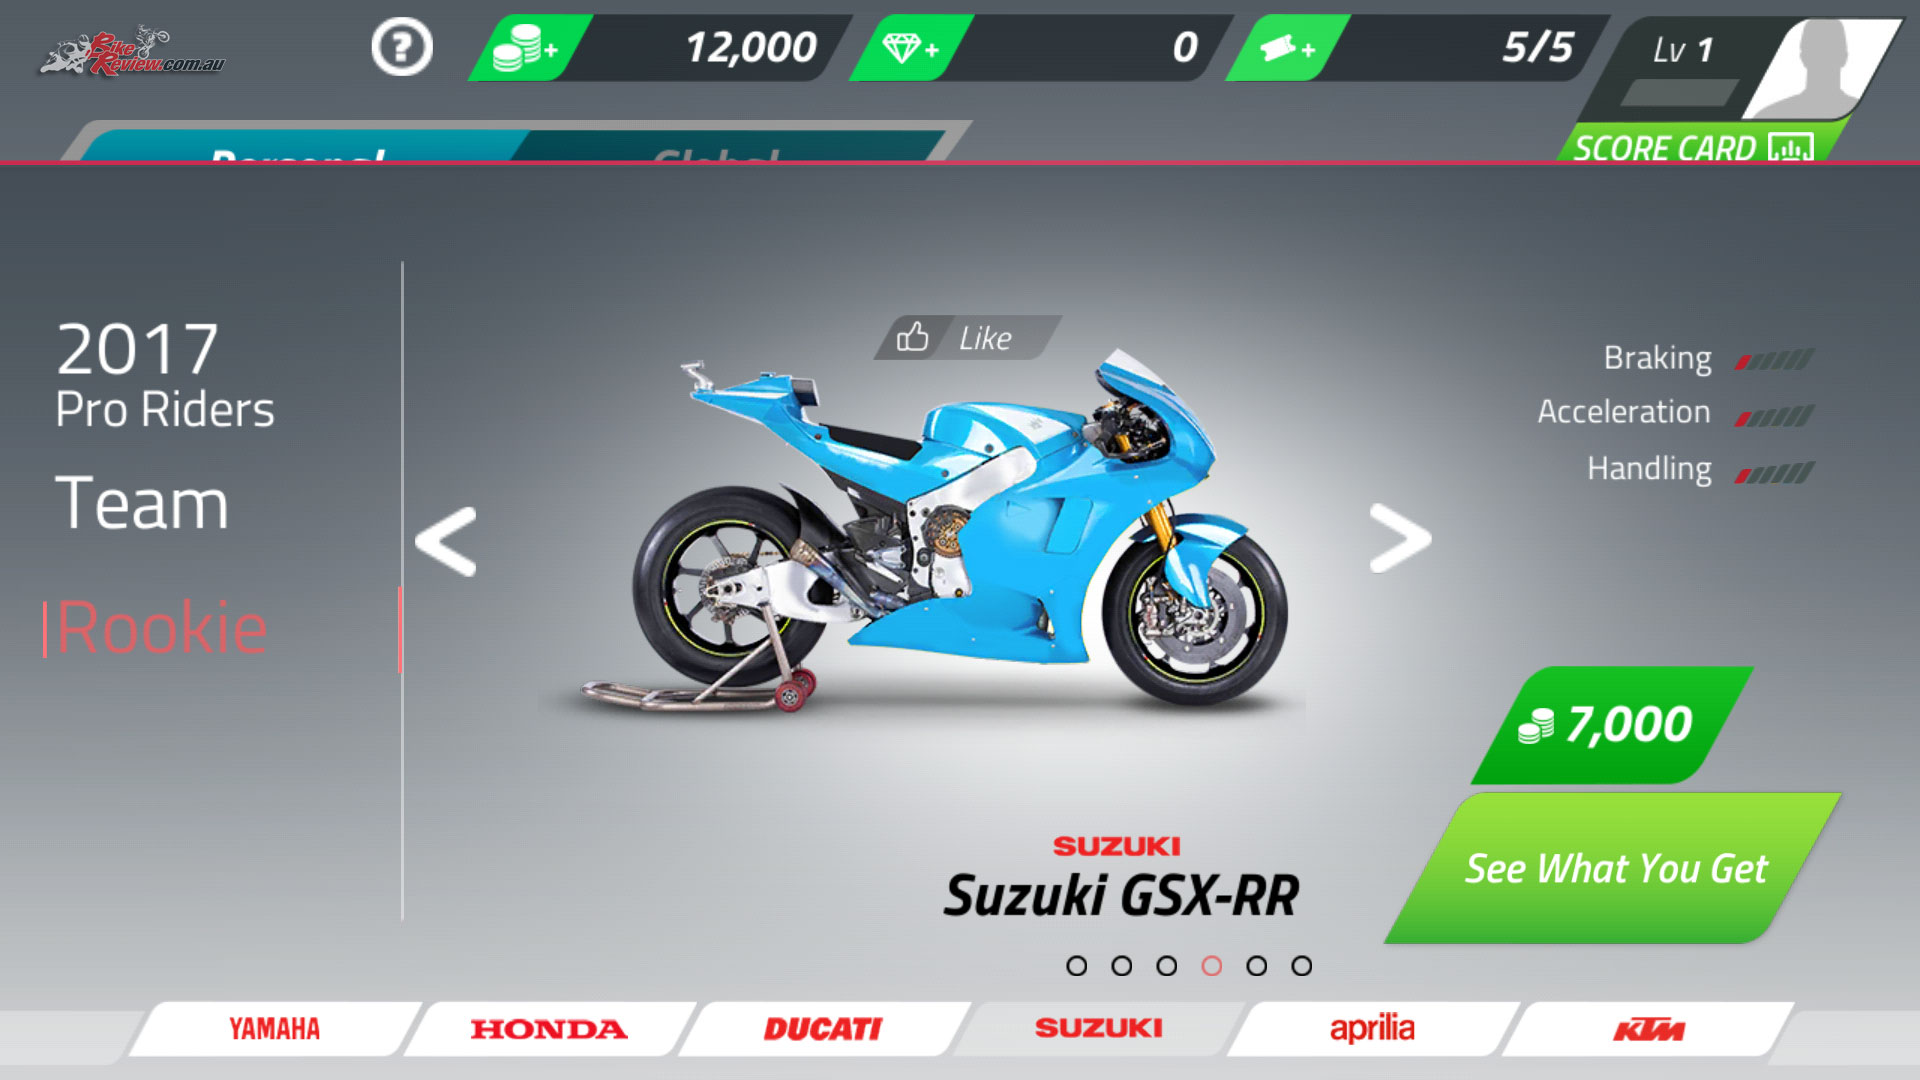 Bike choices for your Rookie machine include Yamaha, Honda, Ducati, Suzuki, Aprilia and KTM